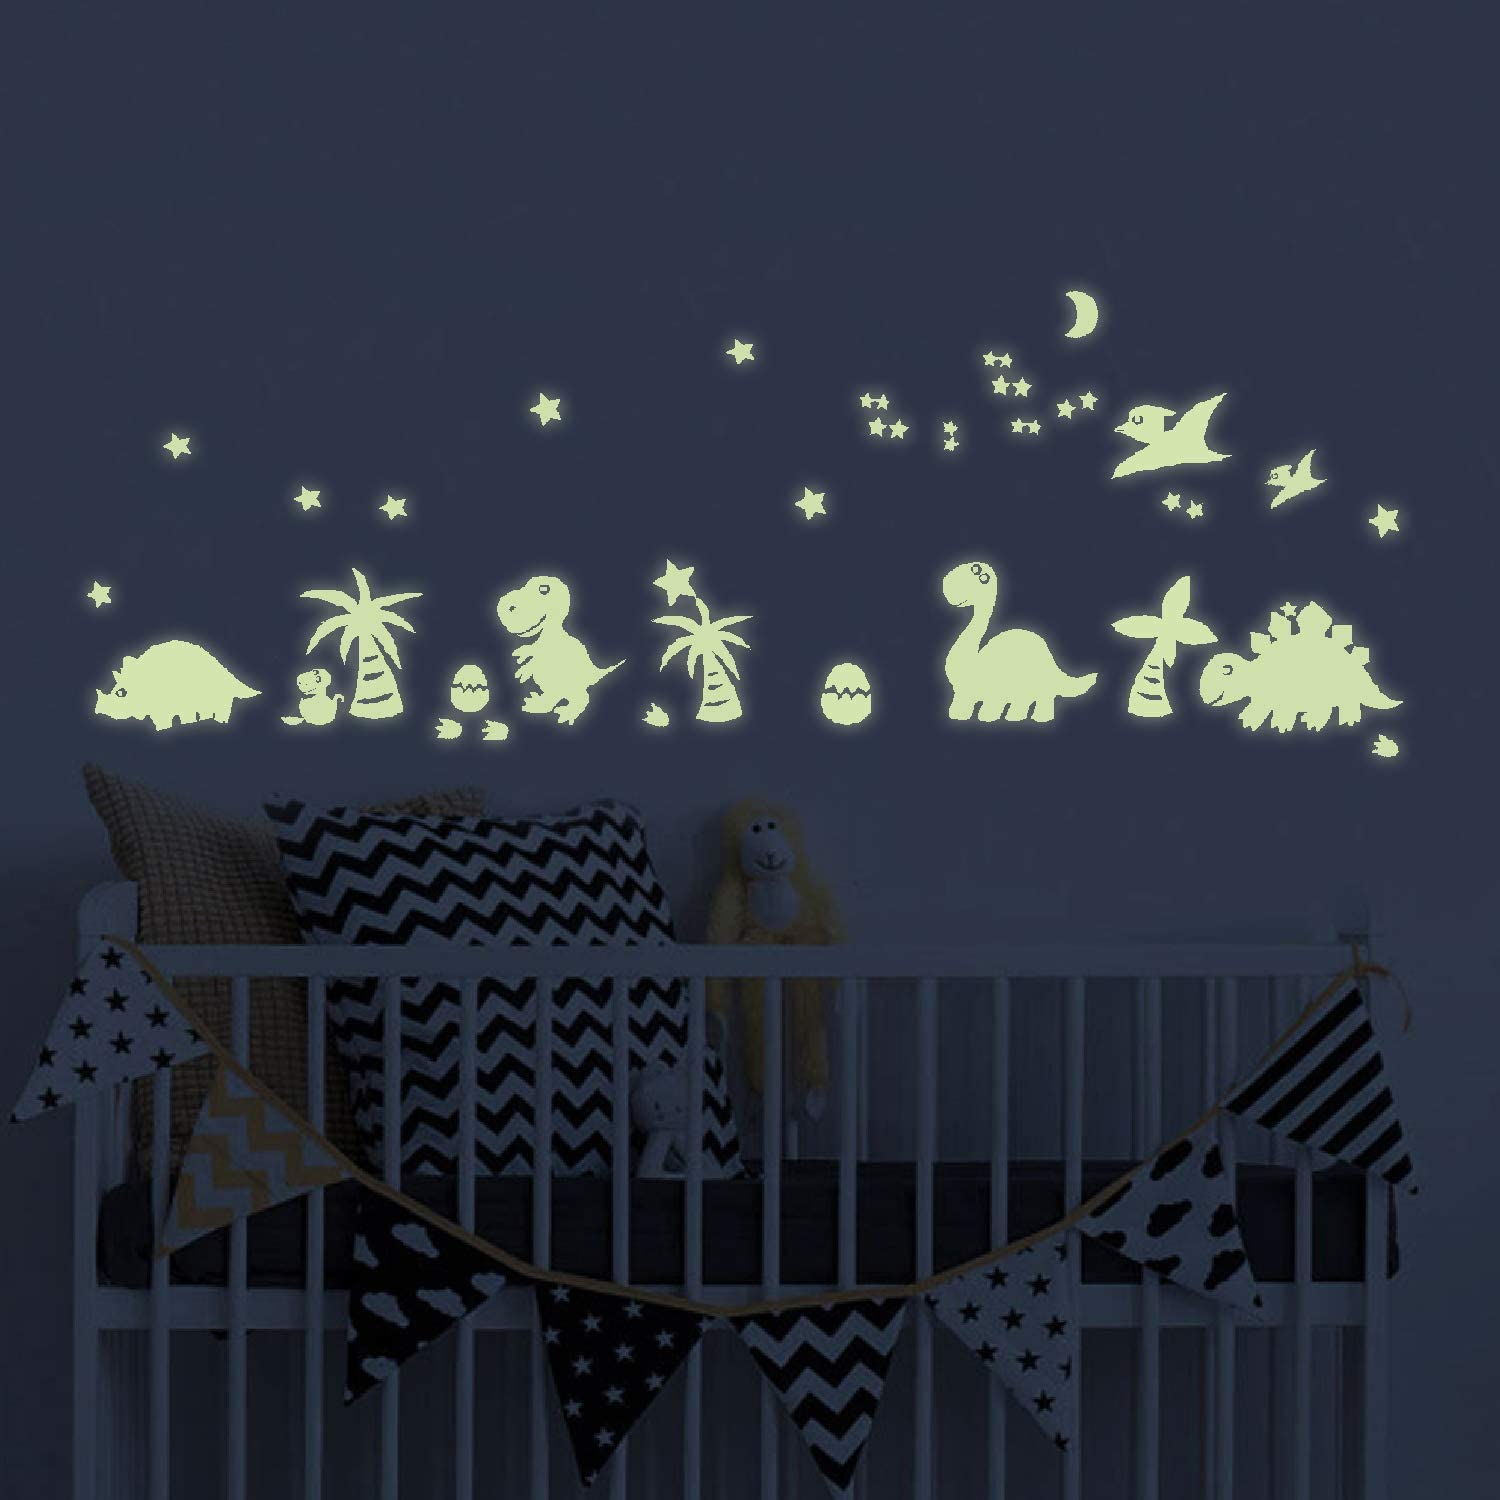 Cheap Room Decor for Bedroom Wall Decoration Dinosaur Room Decor for Boys and Kids Upgrade Glow in The Dark Wall Stickers for Children/'s Room